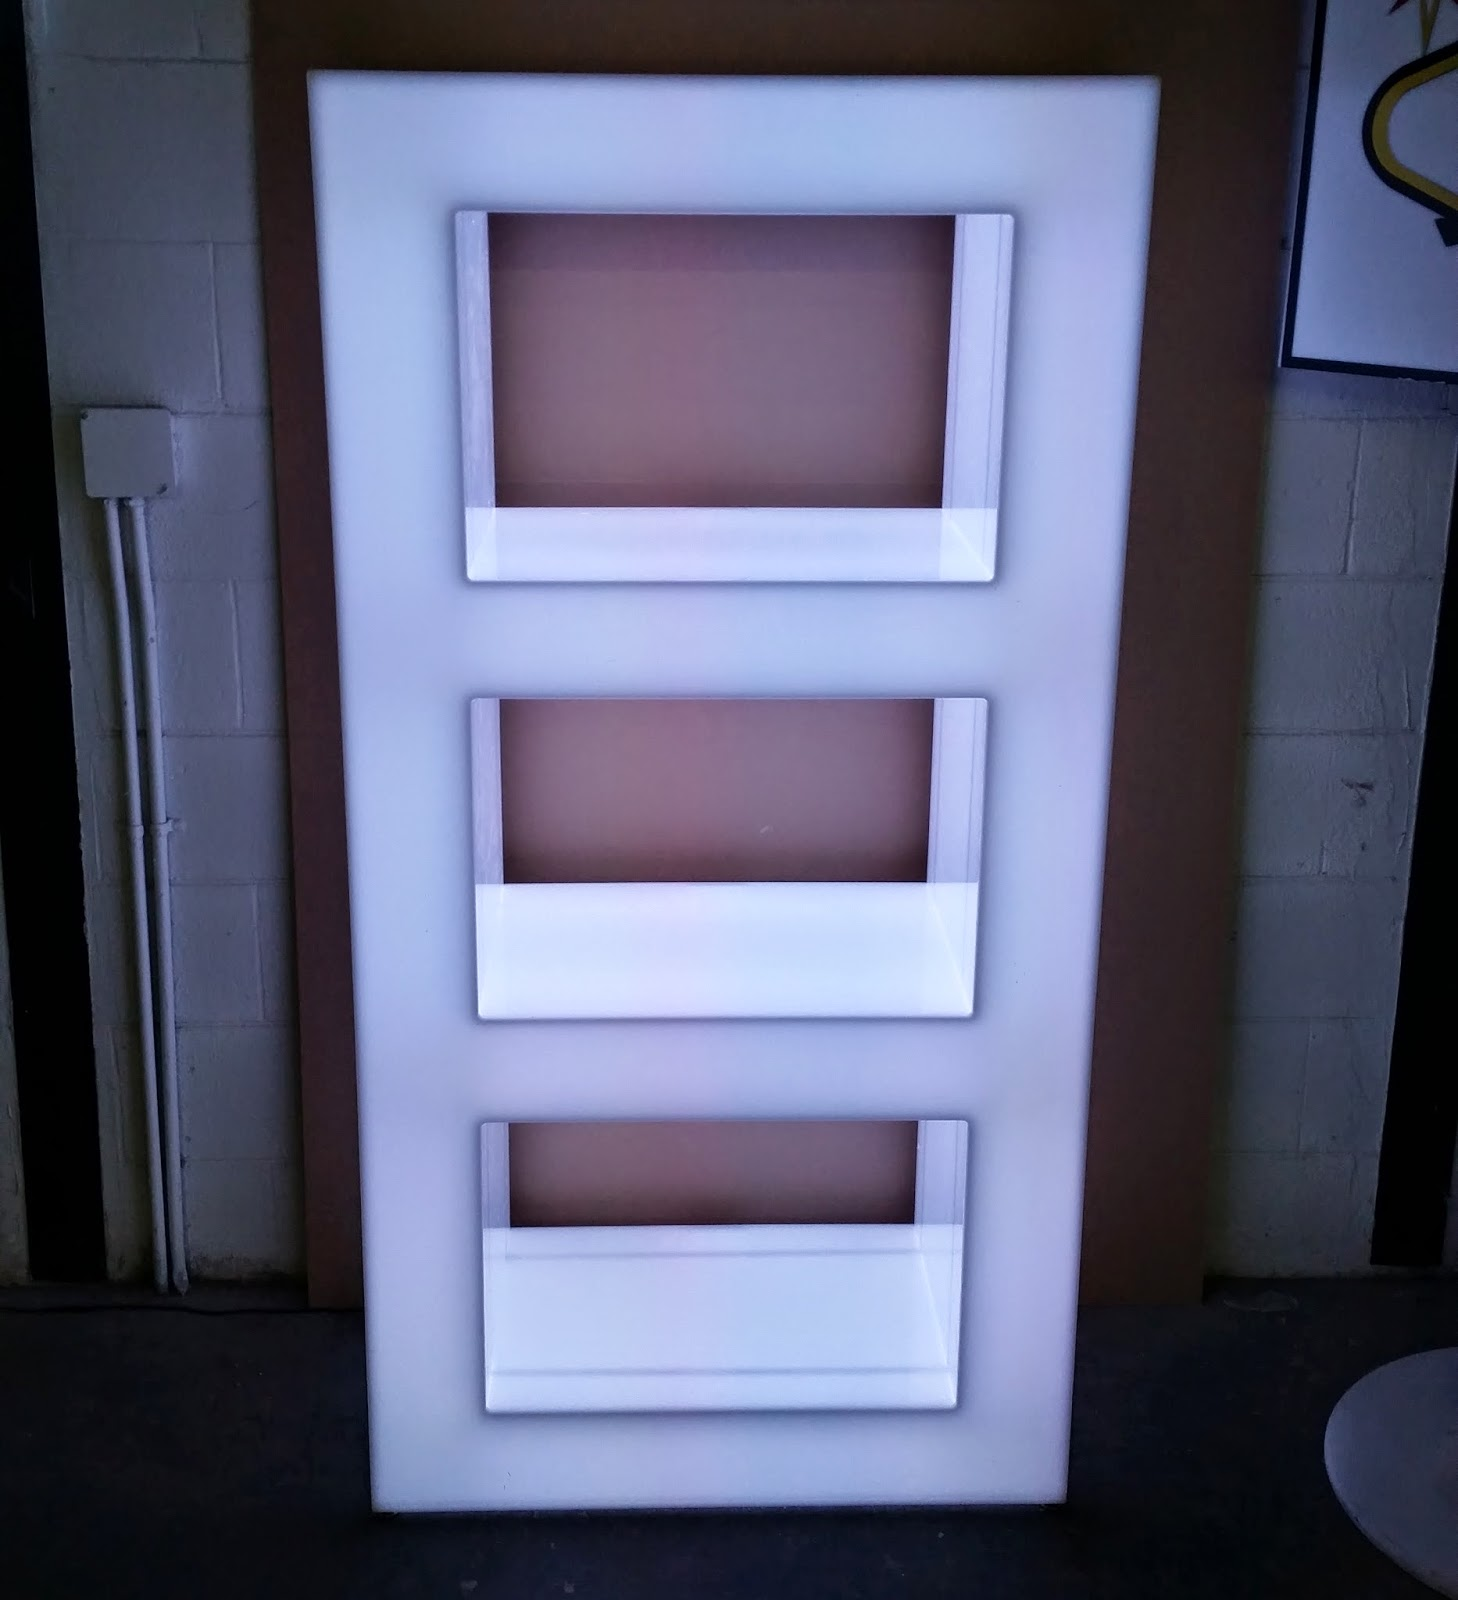 light up shelving unit